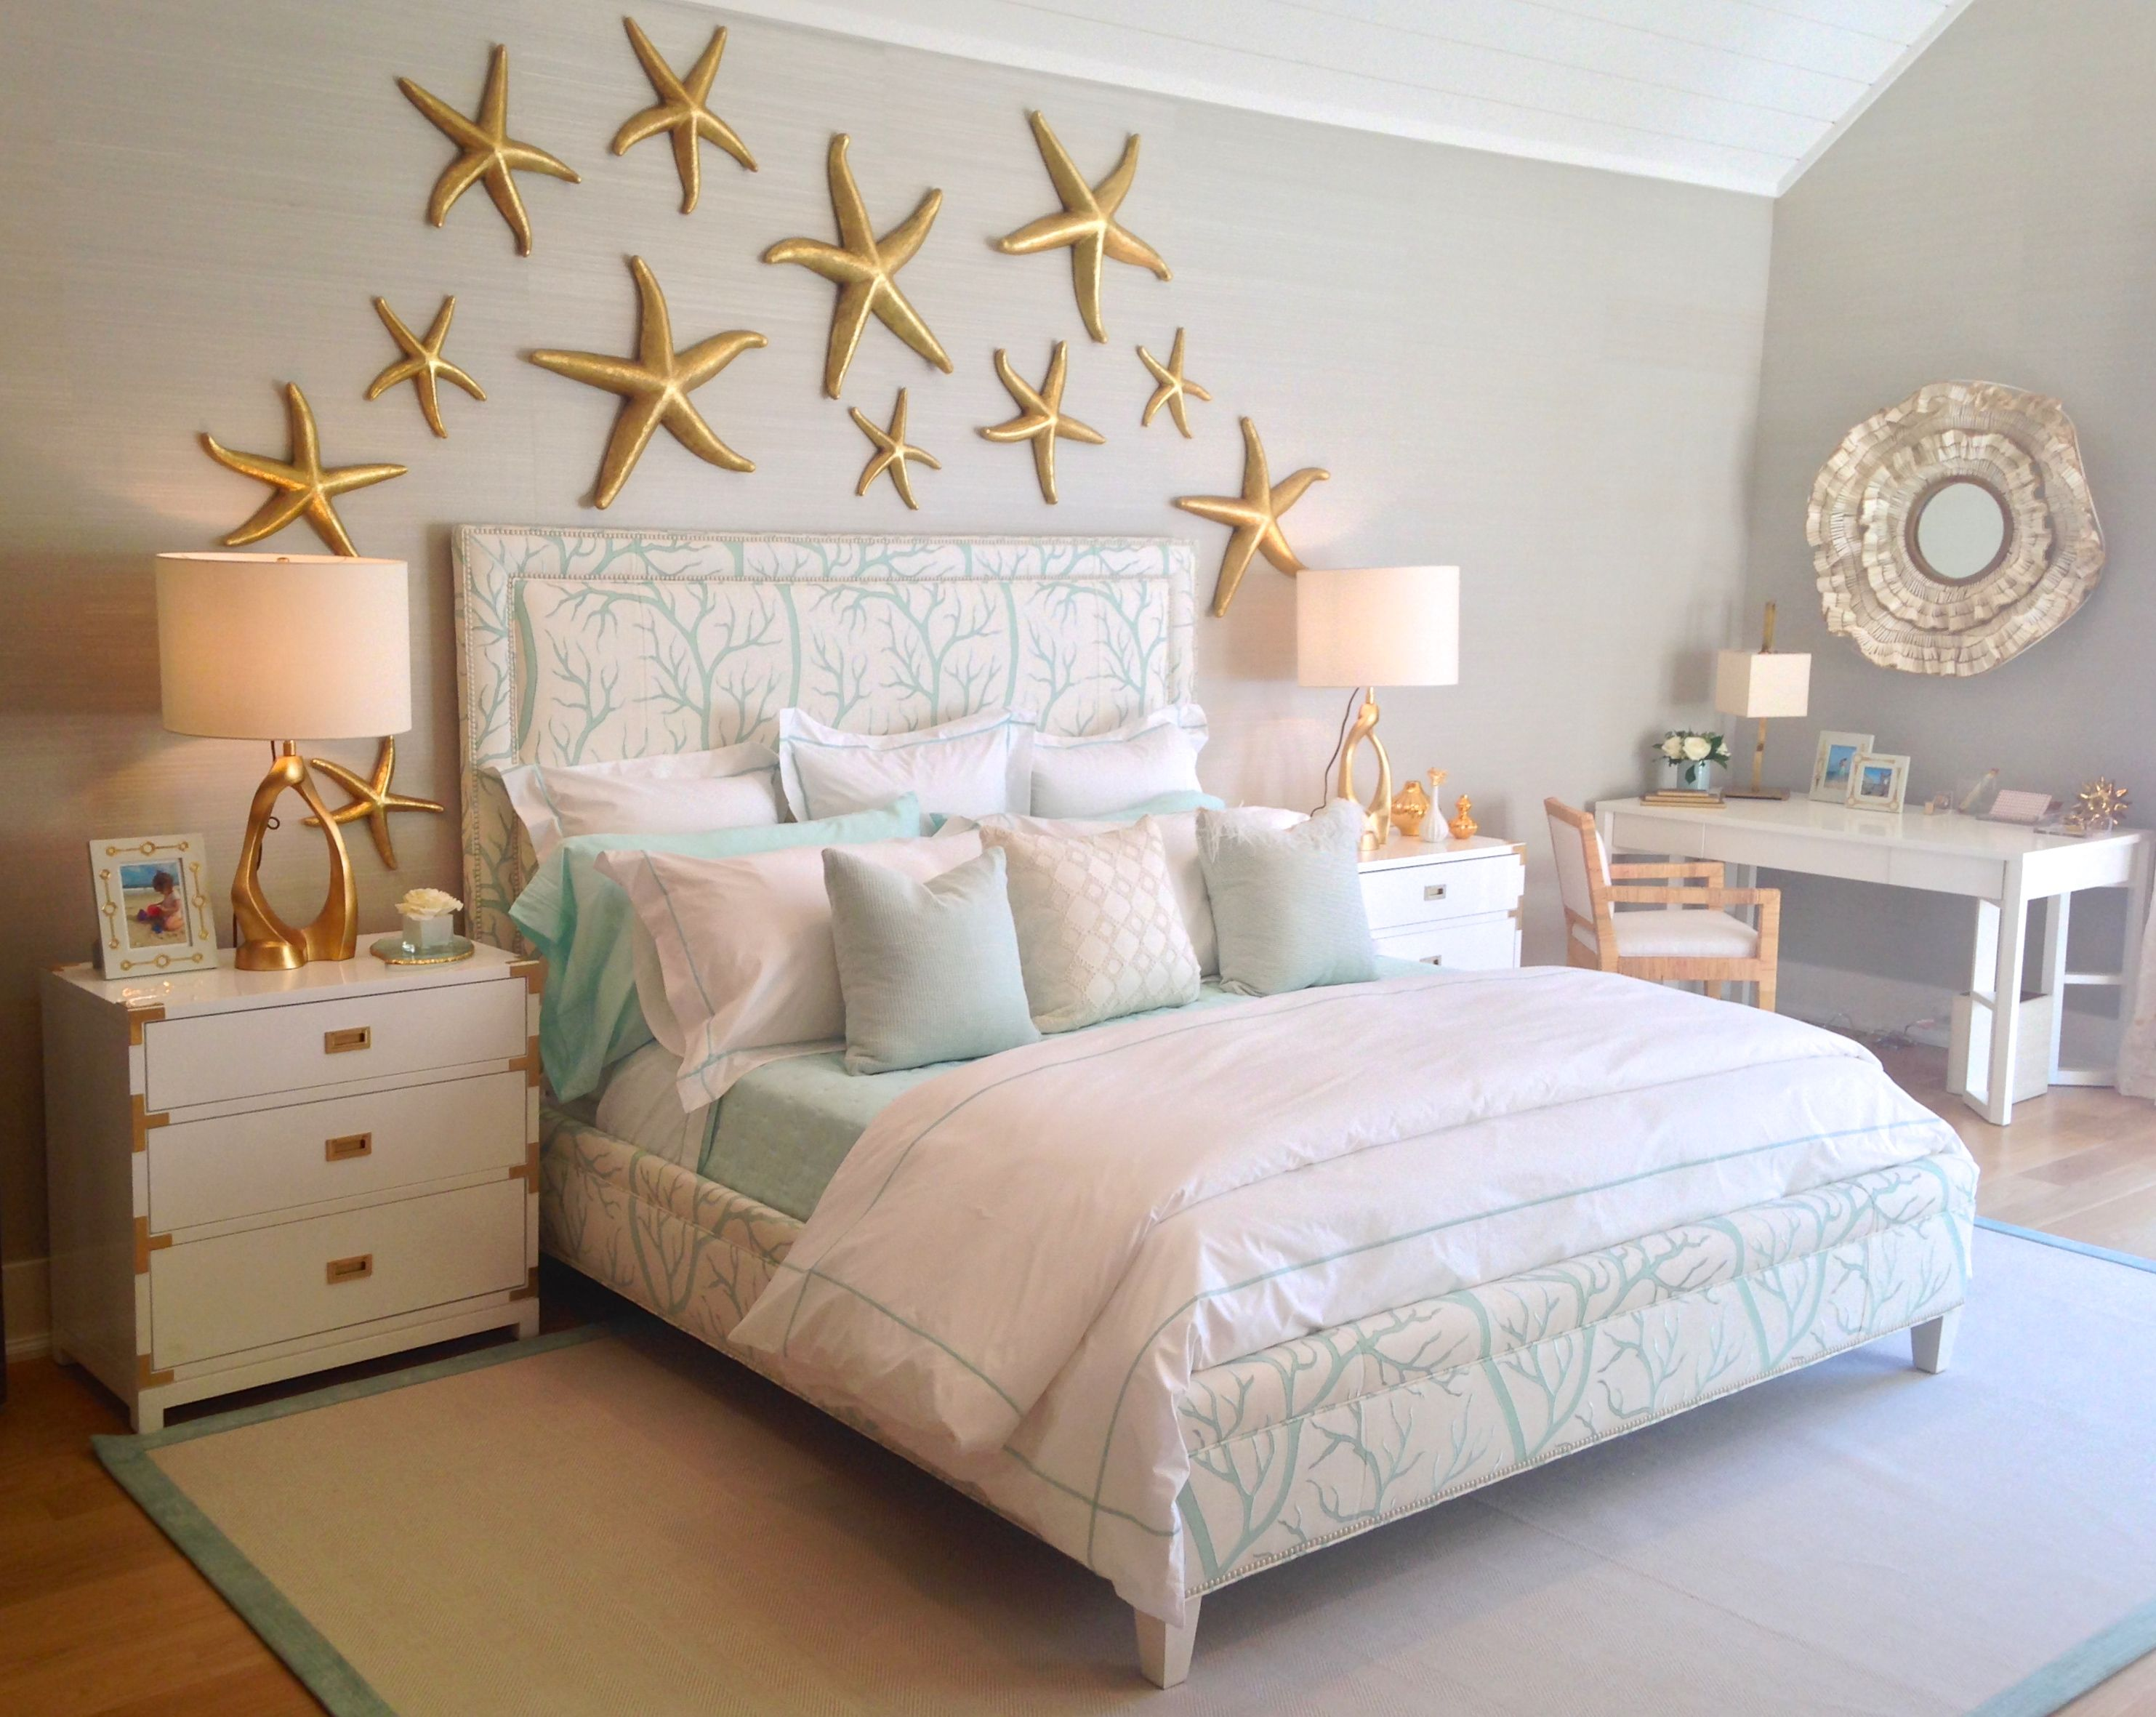 Bedroom Decor   Turquoise Bedroom Ideas Girls Beach Bedrooms, Beach Theme  Bedrooms, Girls Bedroom